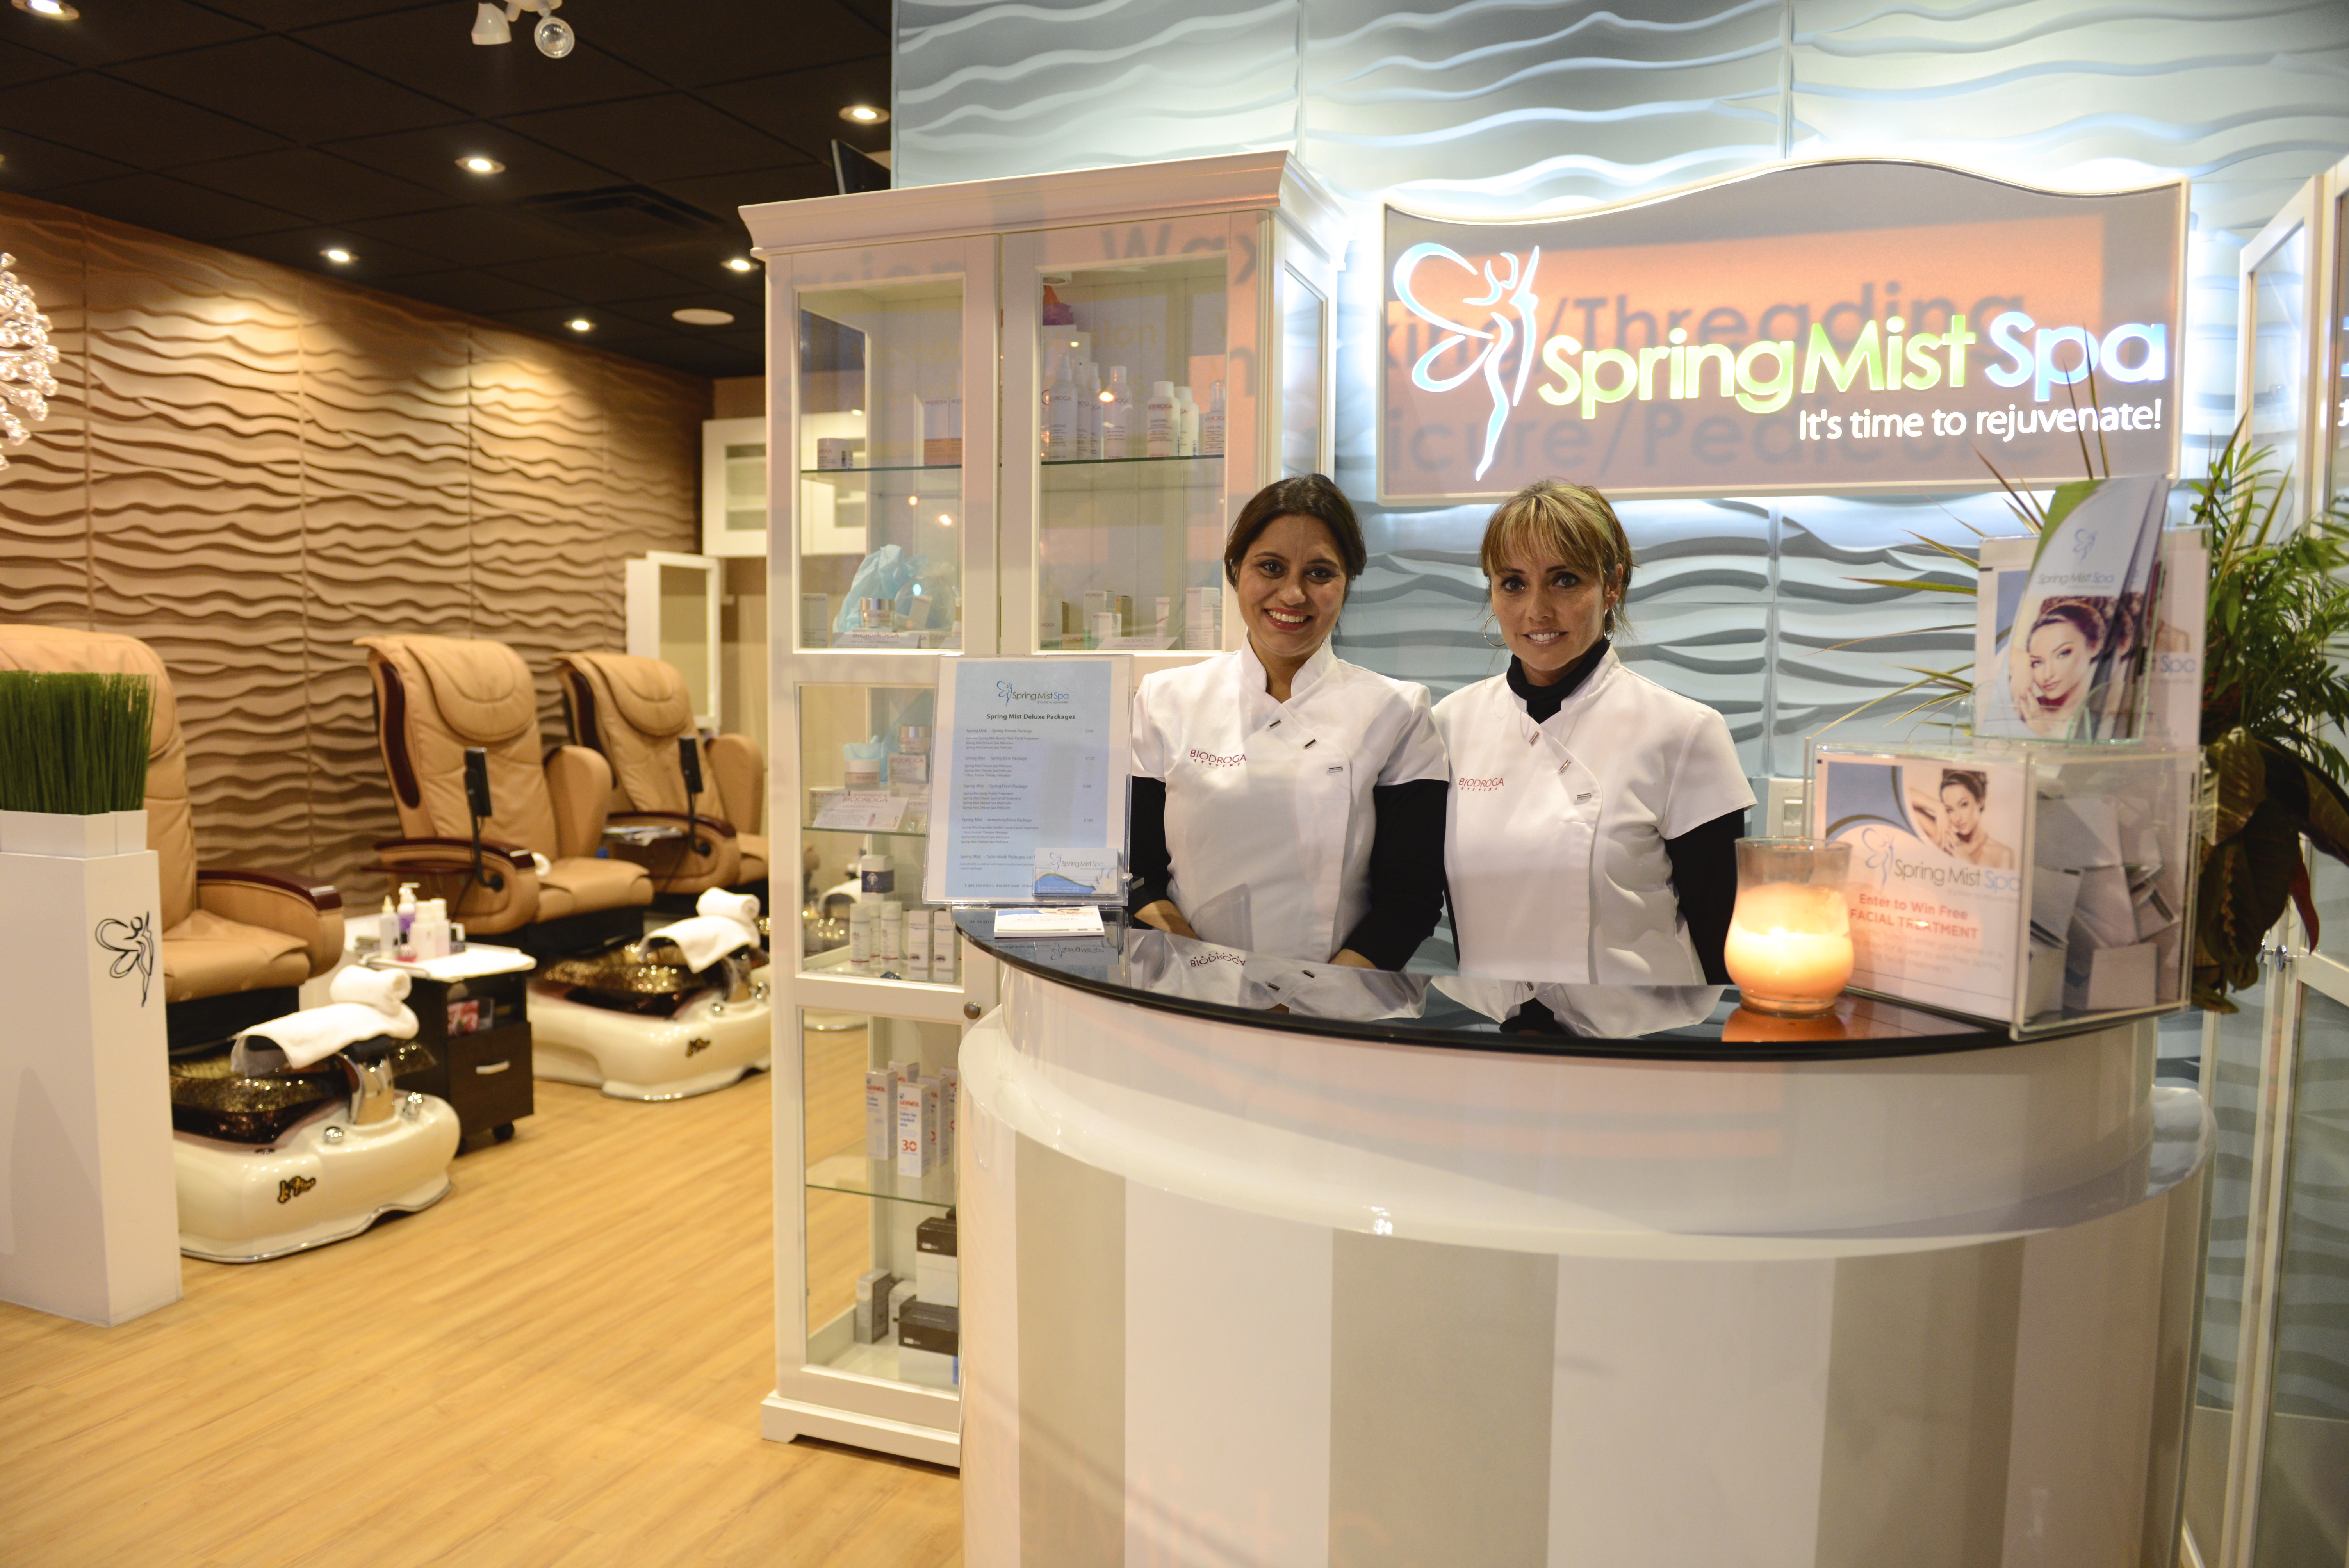 Spring Mist Spa's Sarah & Iwona (Certified Medical Aesthetician)